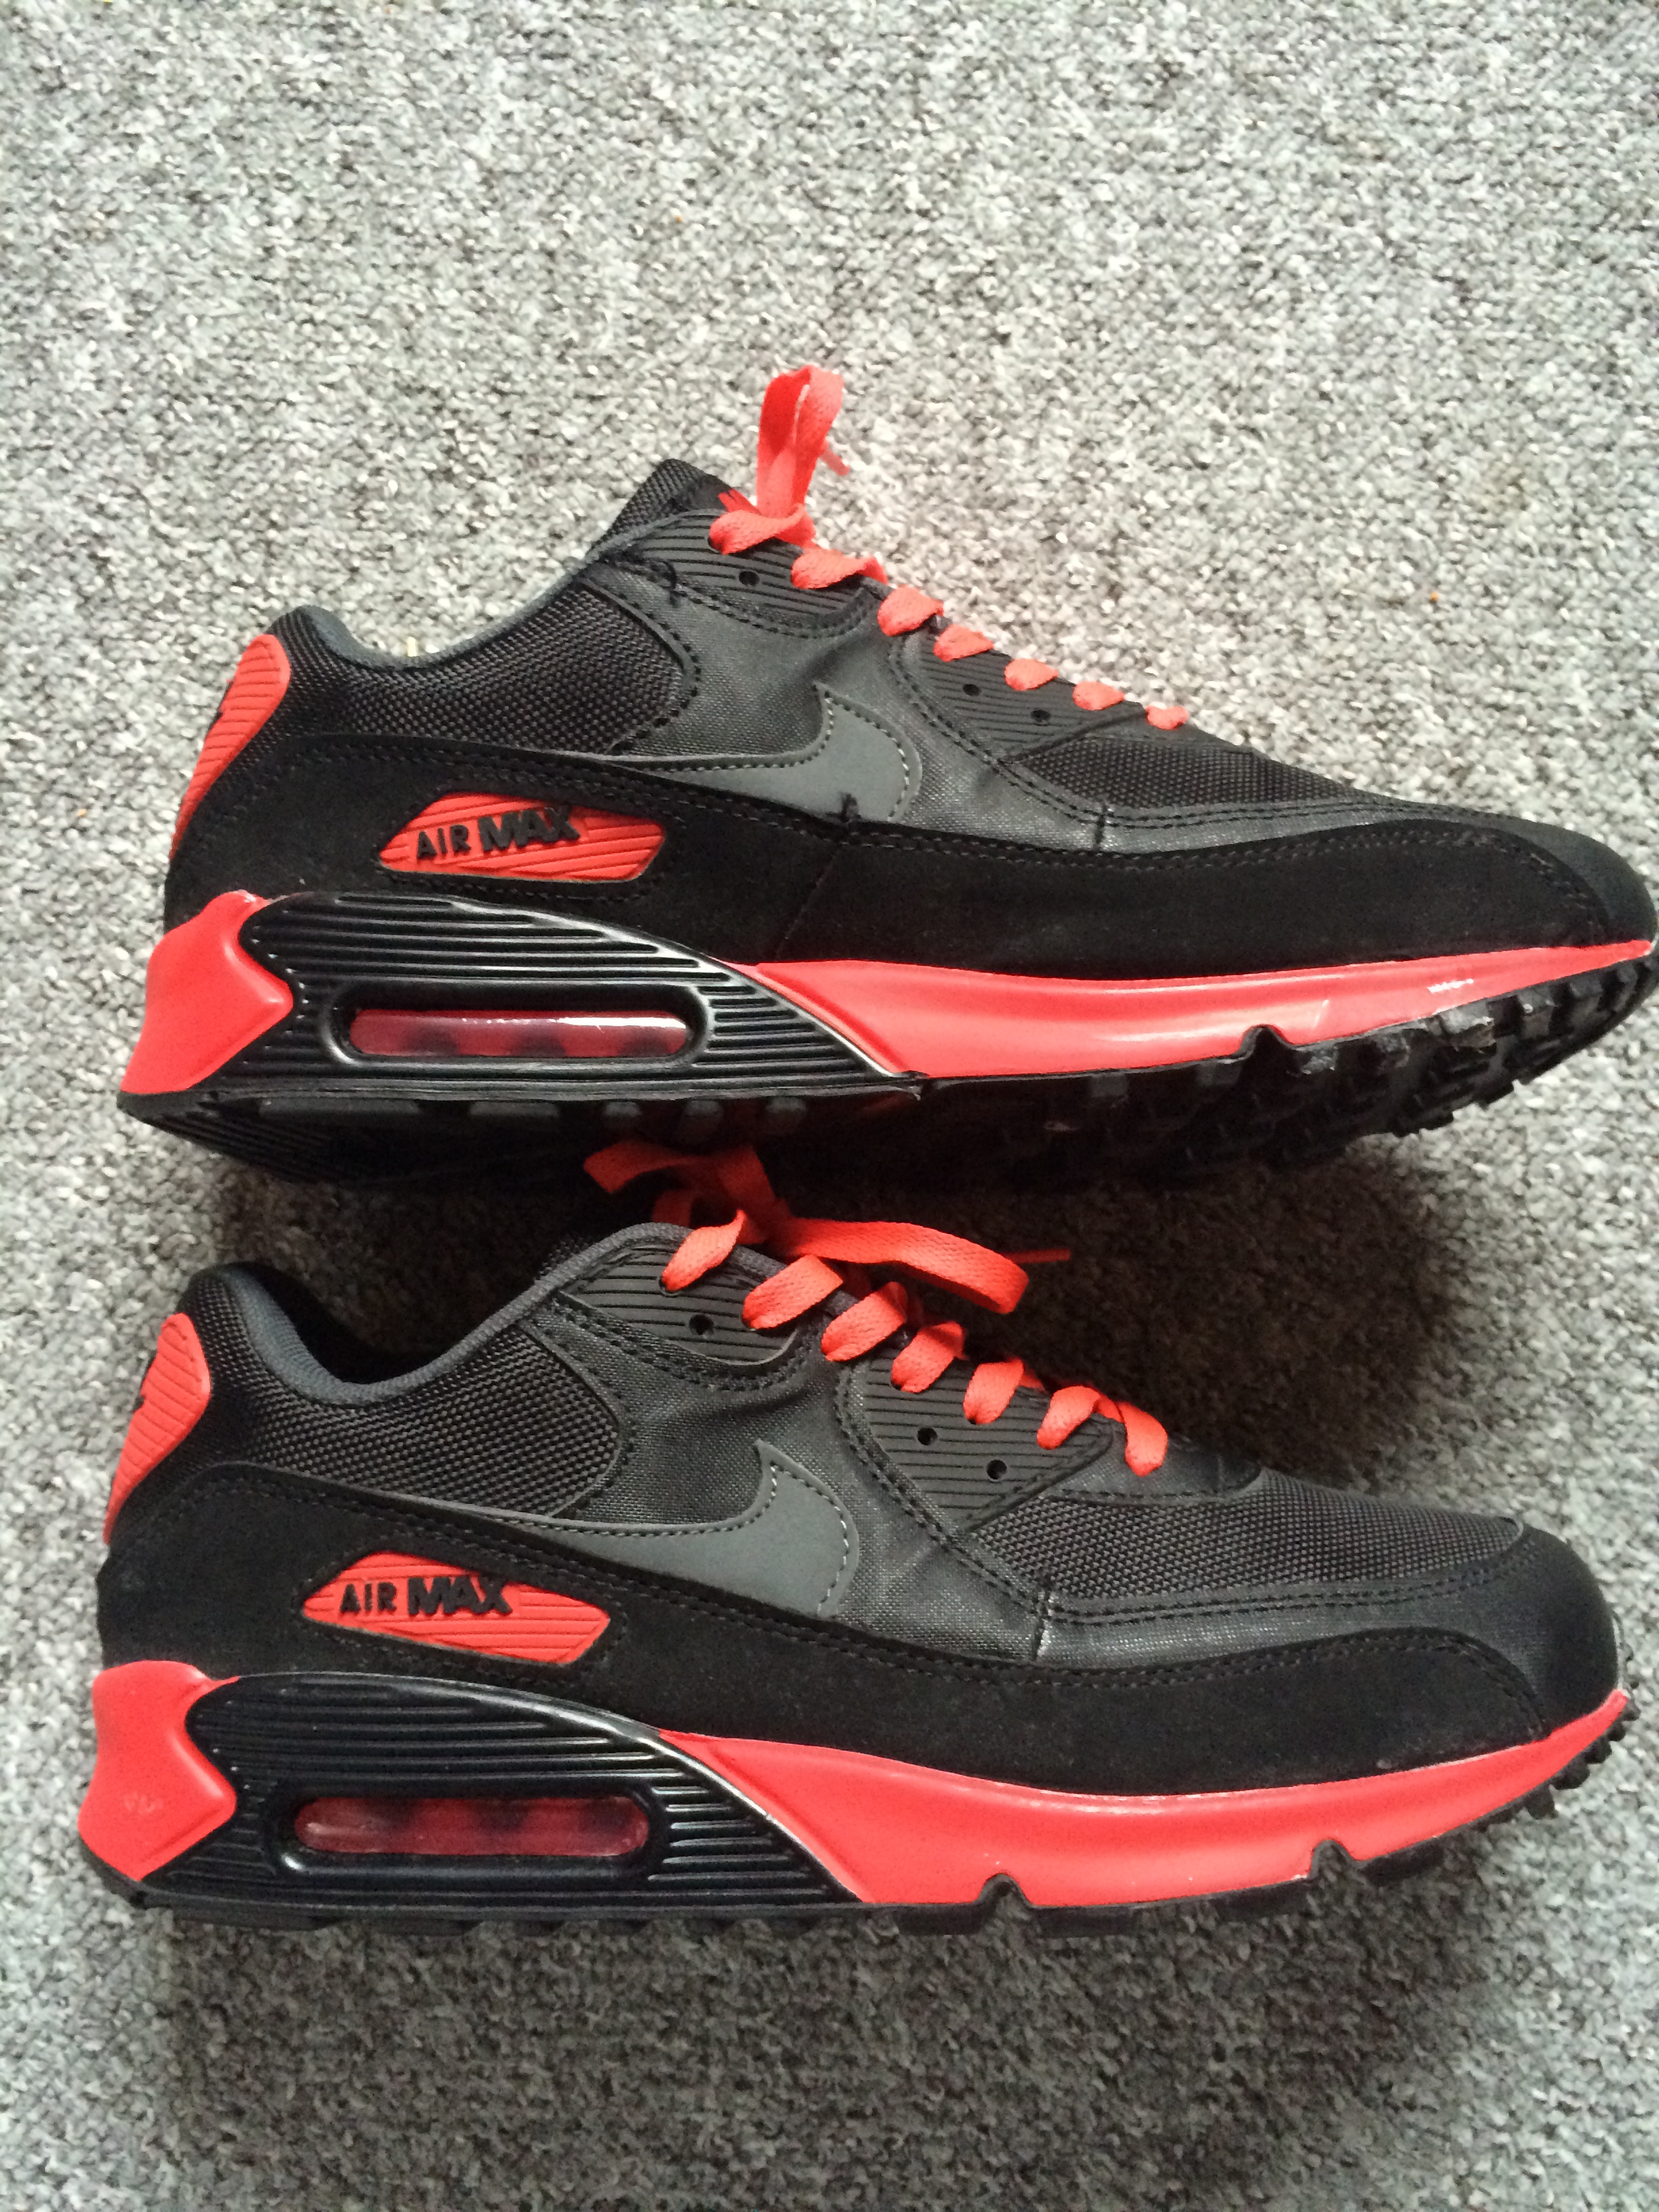 e48ccc24783 nike air max 90 rot fake vs real